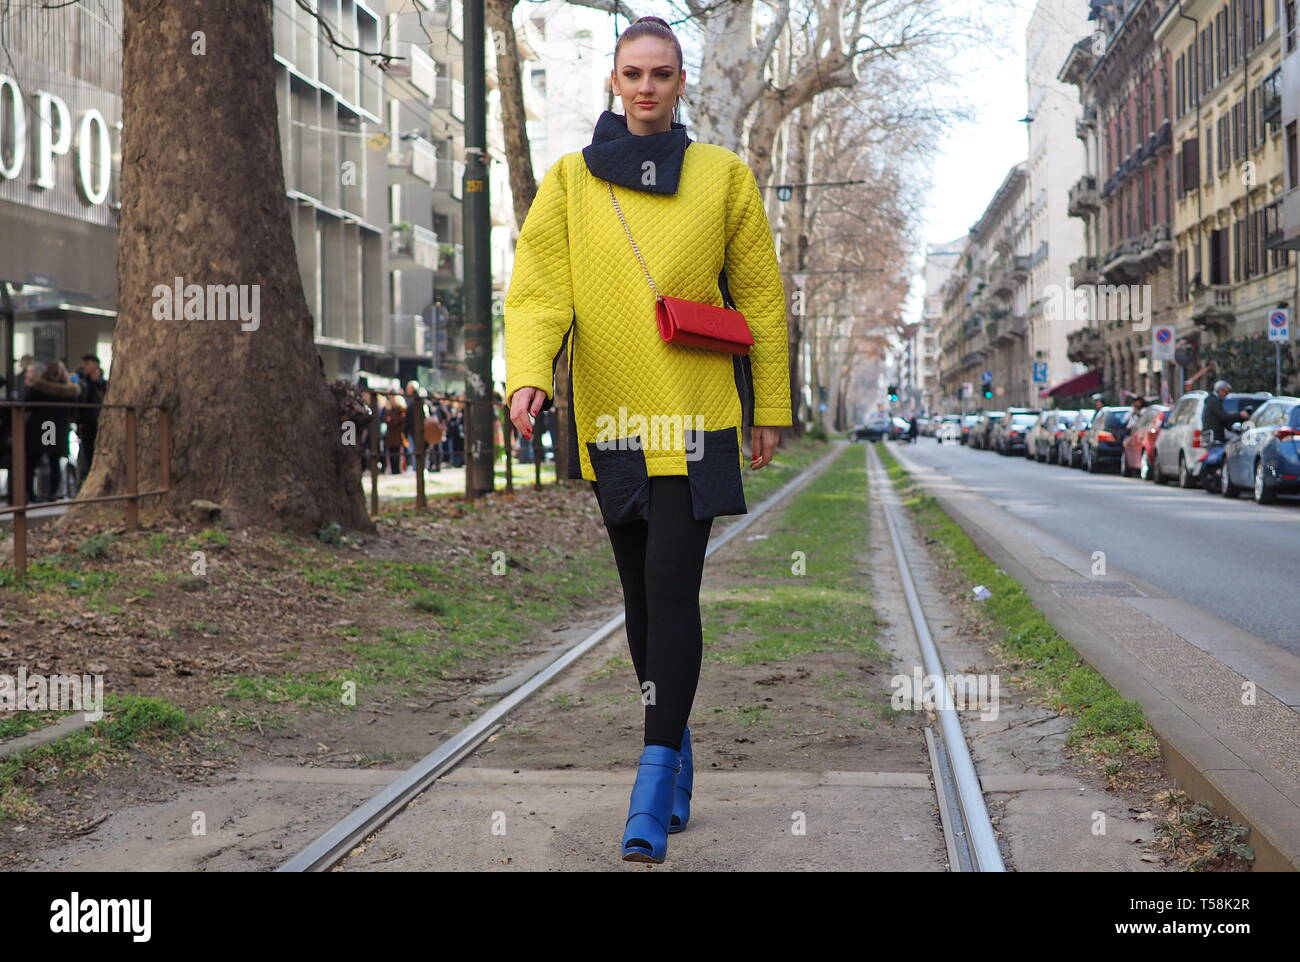 MILAN, Italy: 24 February 2019: Fashion Blogger street style outfit after Dolce & Gabbana fashion show during Milan fashion week Fall/winter 2019/2020 - Stock Image